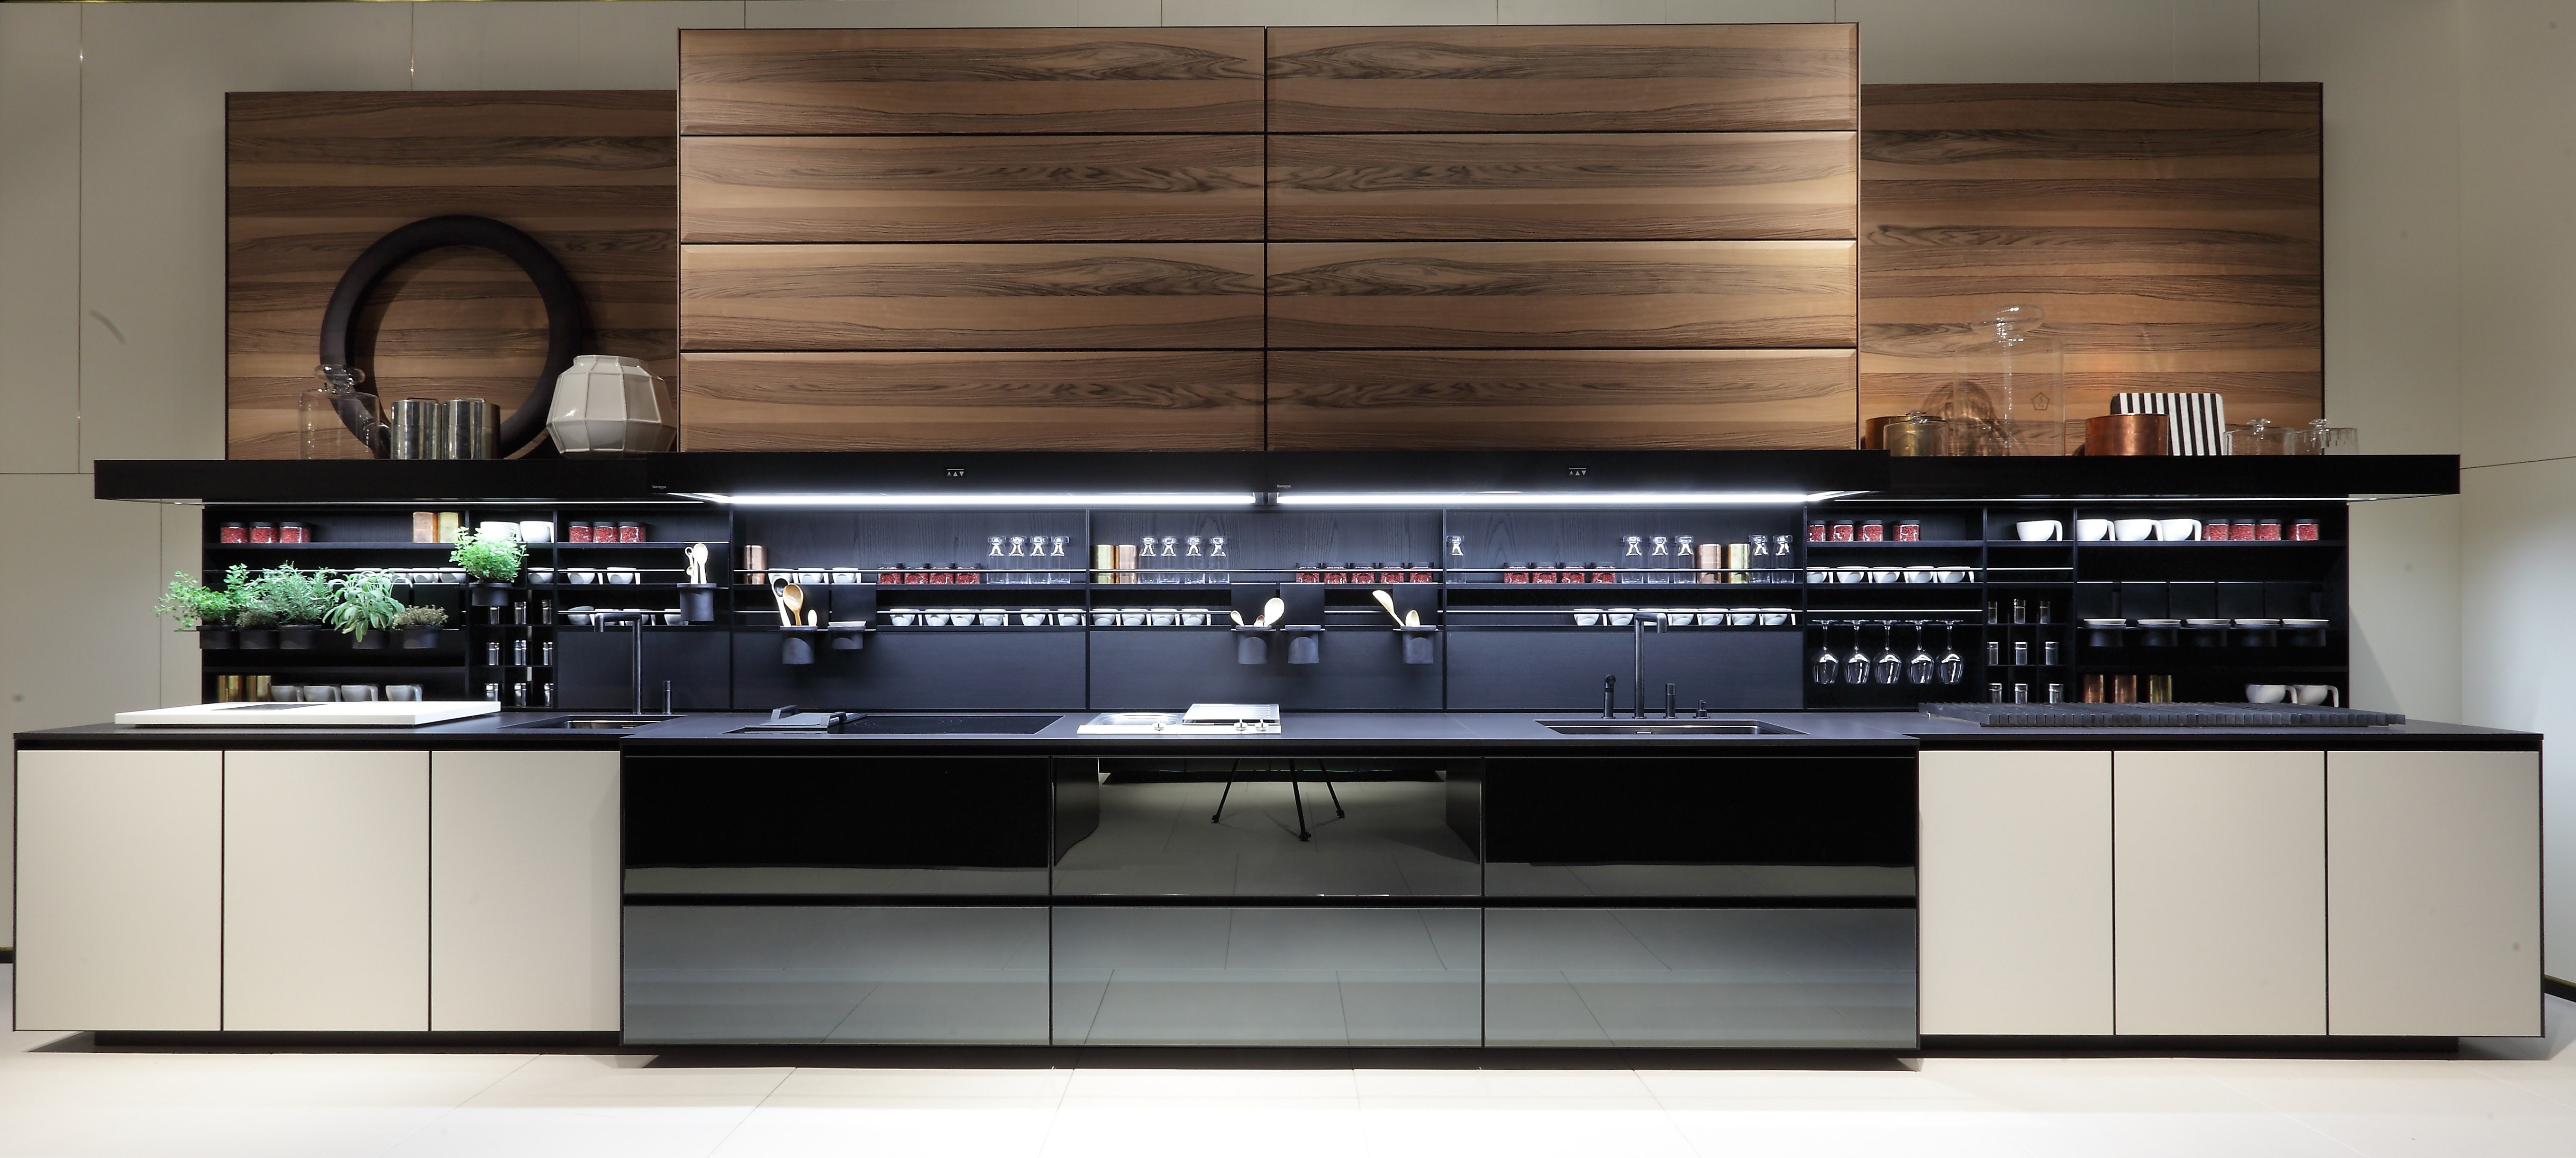 Trendoffice: Disappearing hood and other kitchen ideas ...